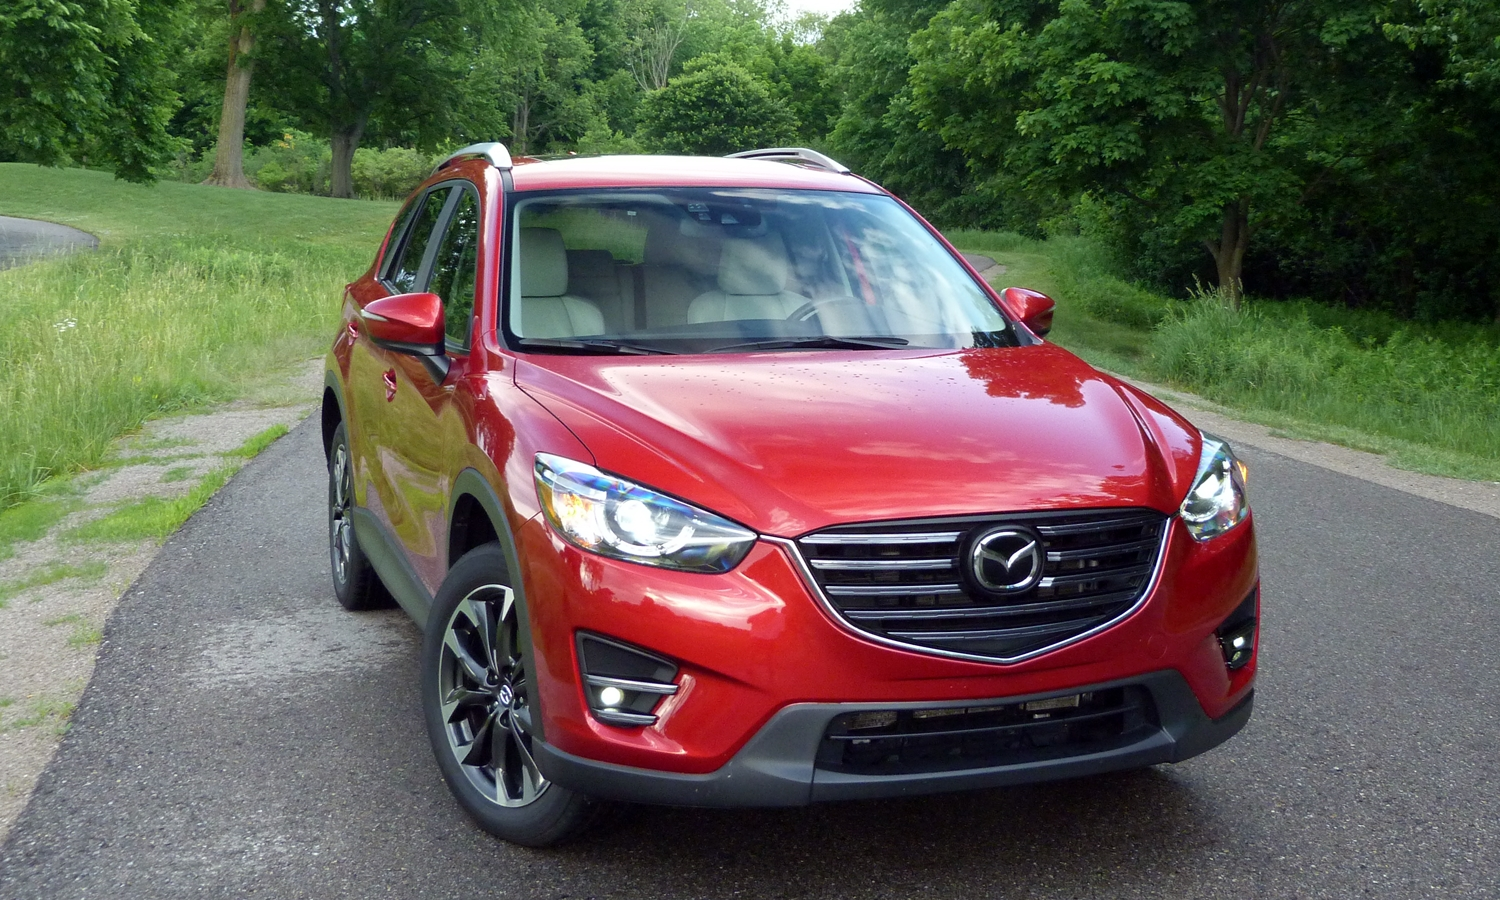 Mazda CX-5 Photos: 2016 Mazda CX-5 front view